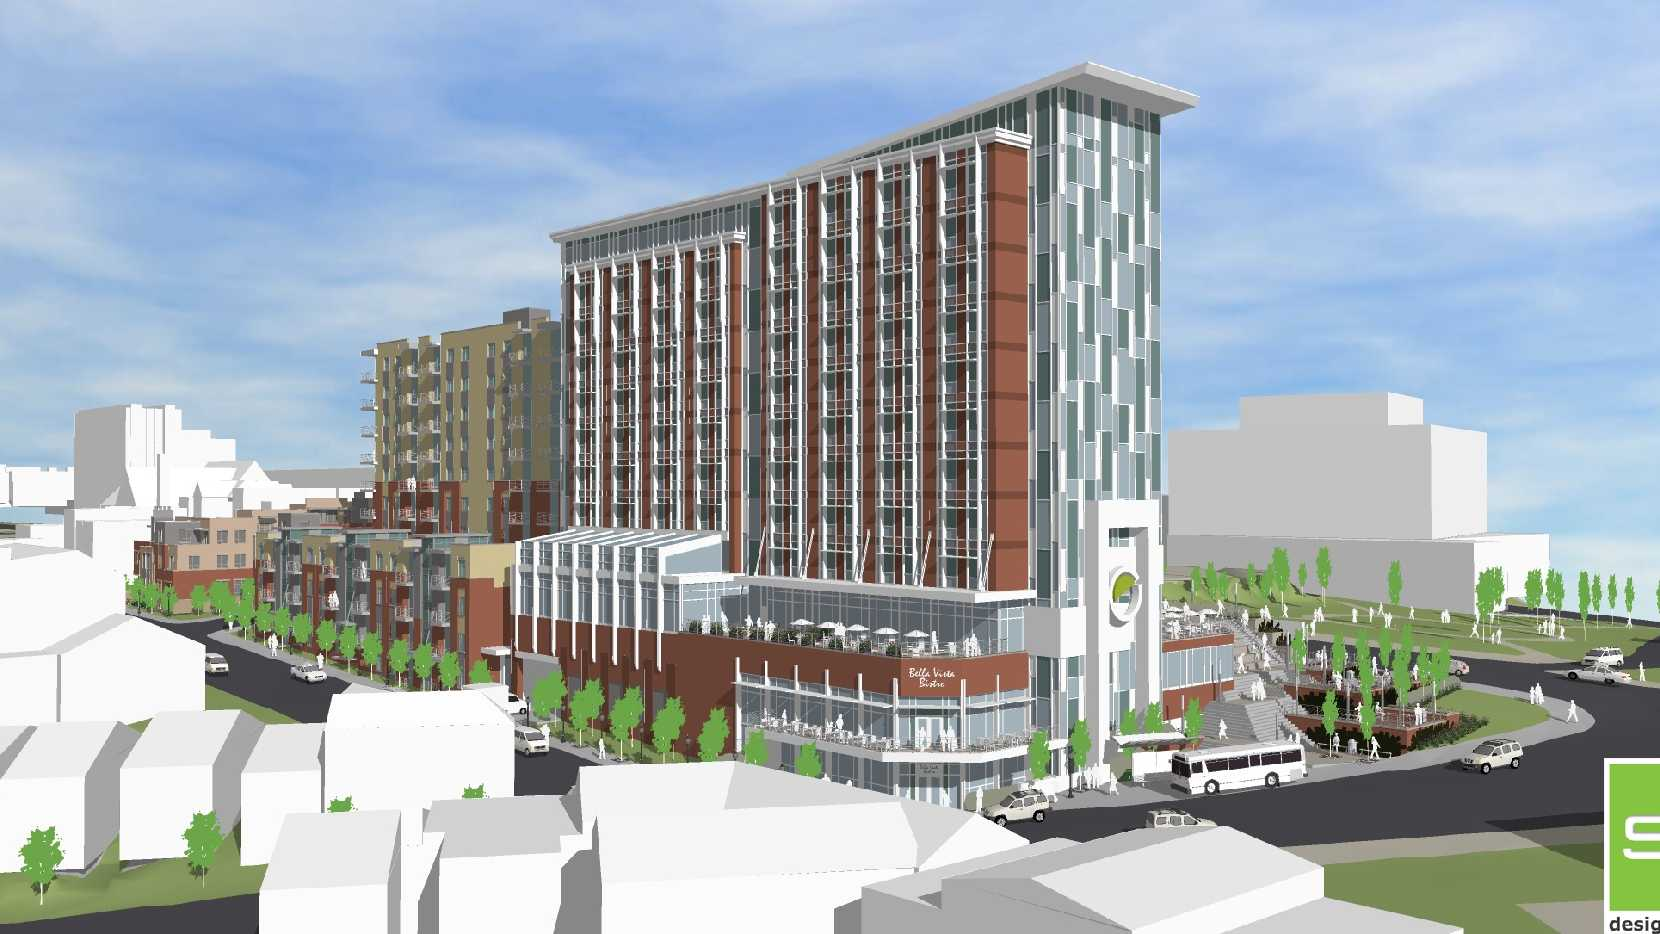 Retail, hotel, apartments and restaurant space will be part of a $75 million mixed-use development in Cincinnati's Uptown.